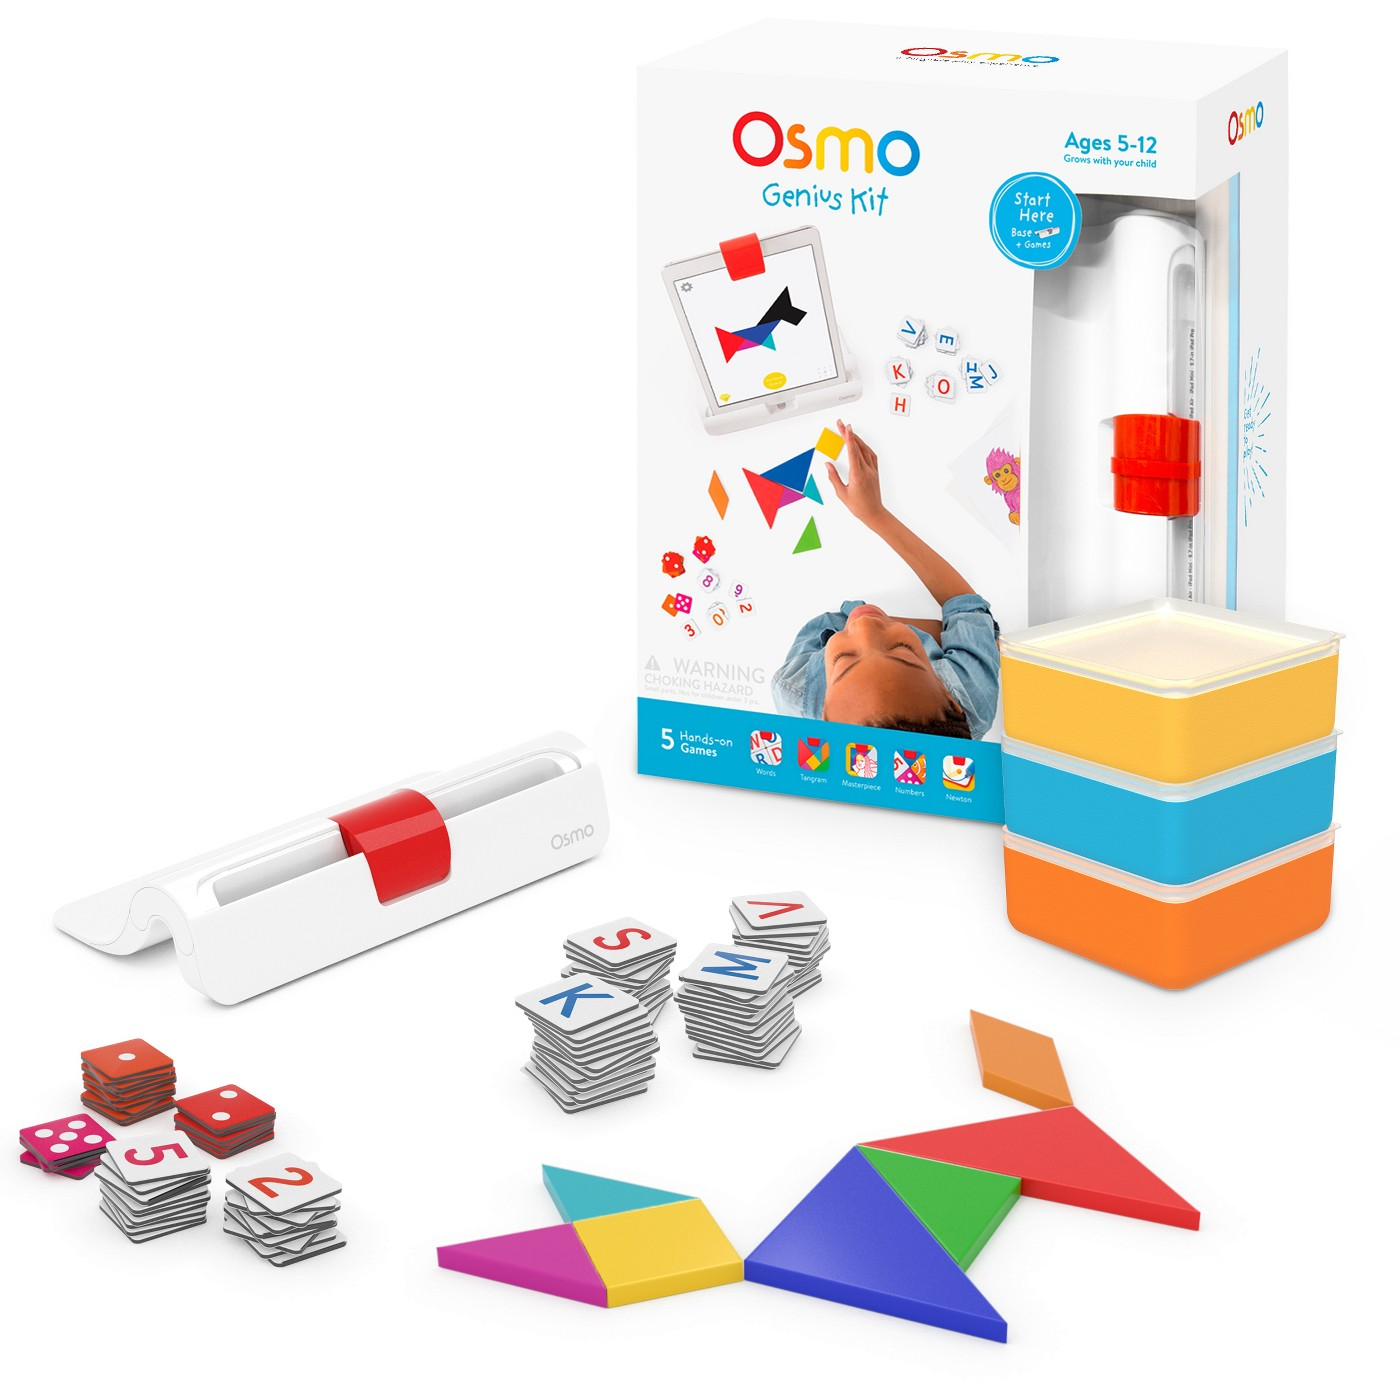 Osmo Genius Kit Educational Play System - (Osmo iPad Base Included) - image 1 of 10